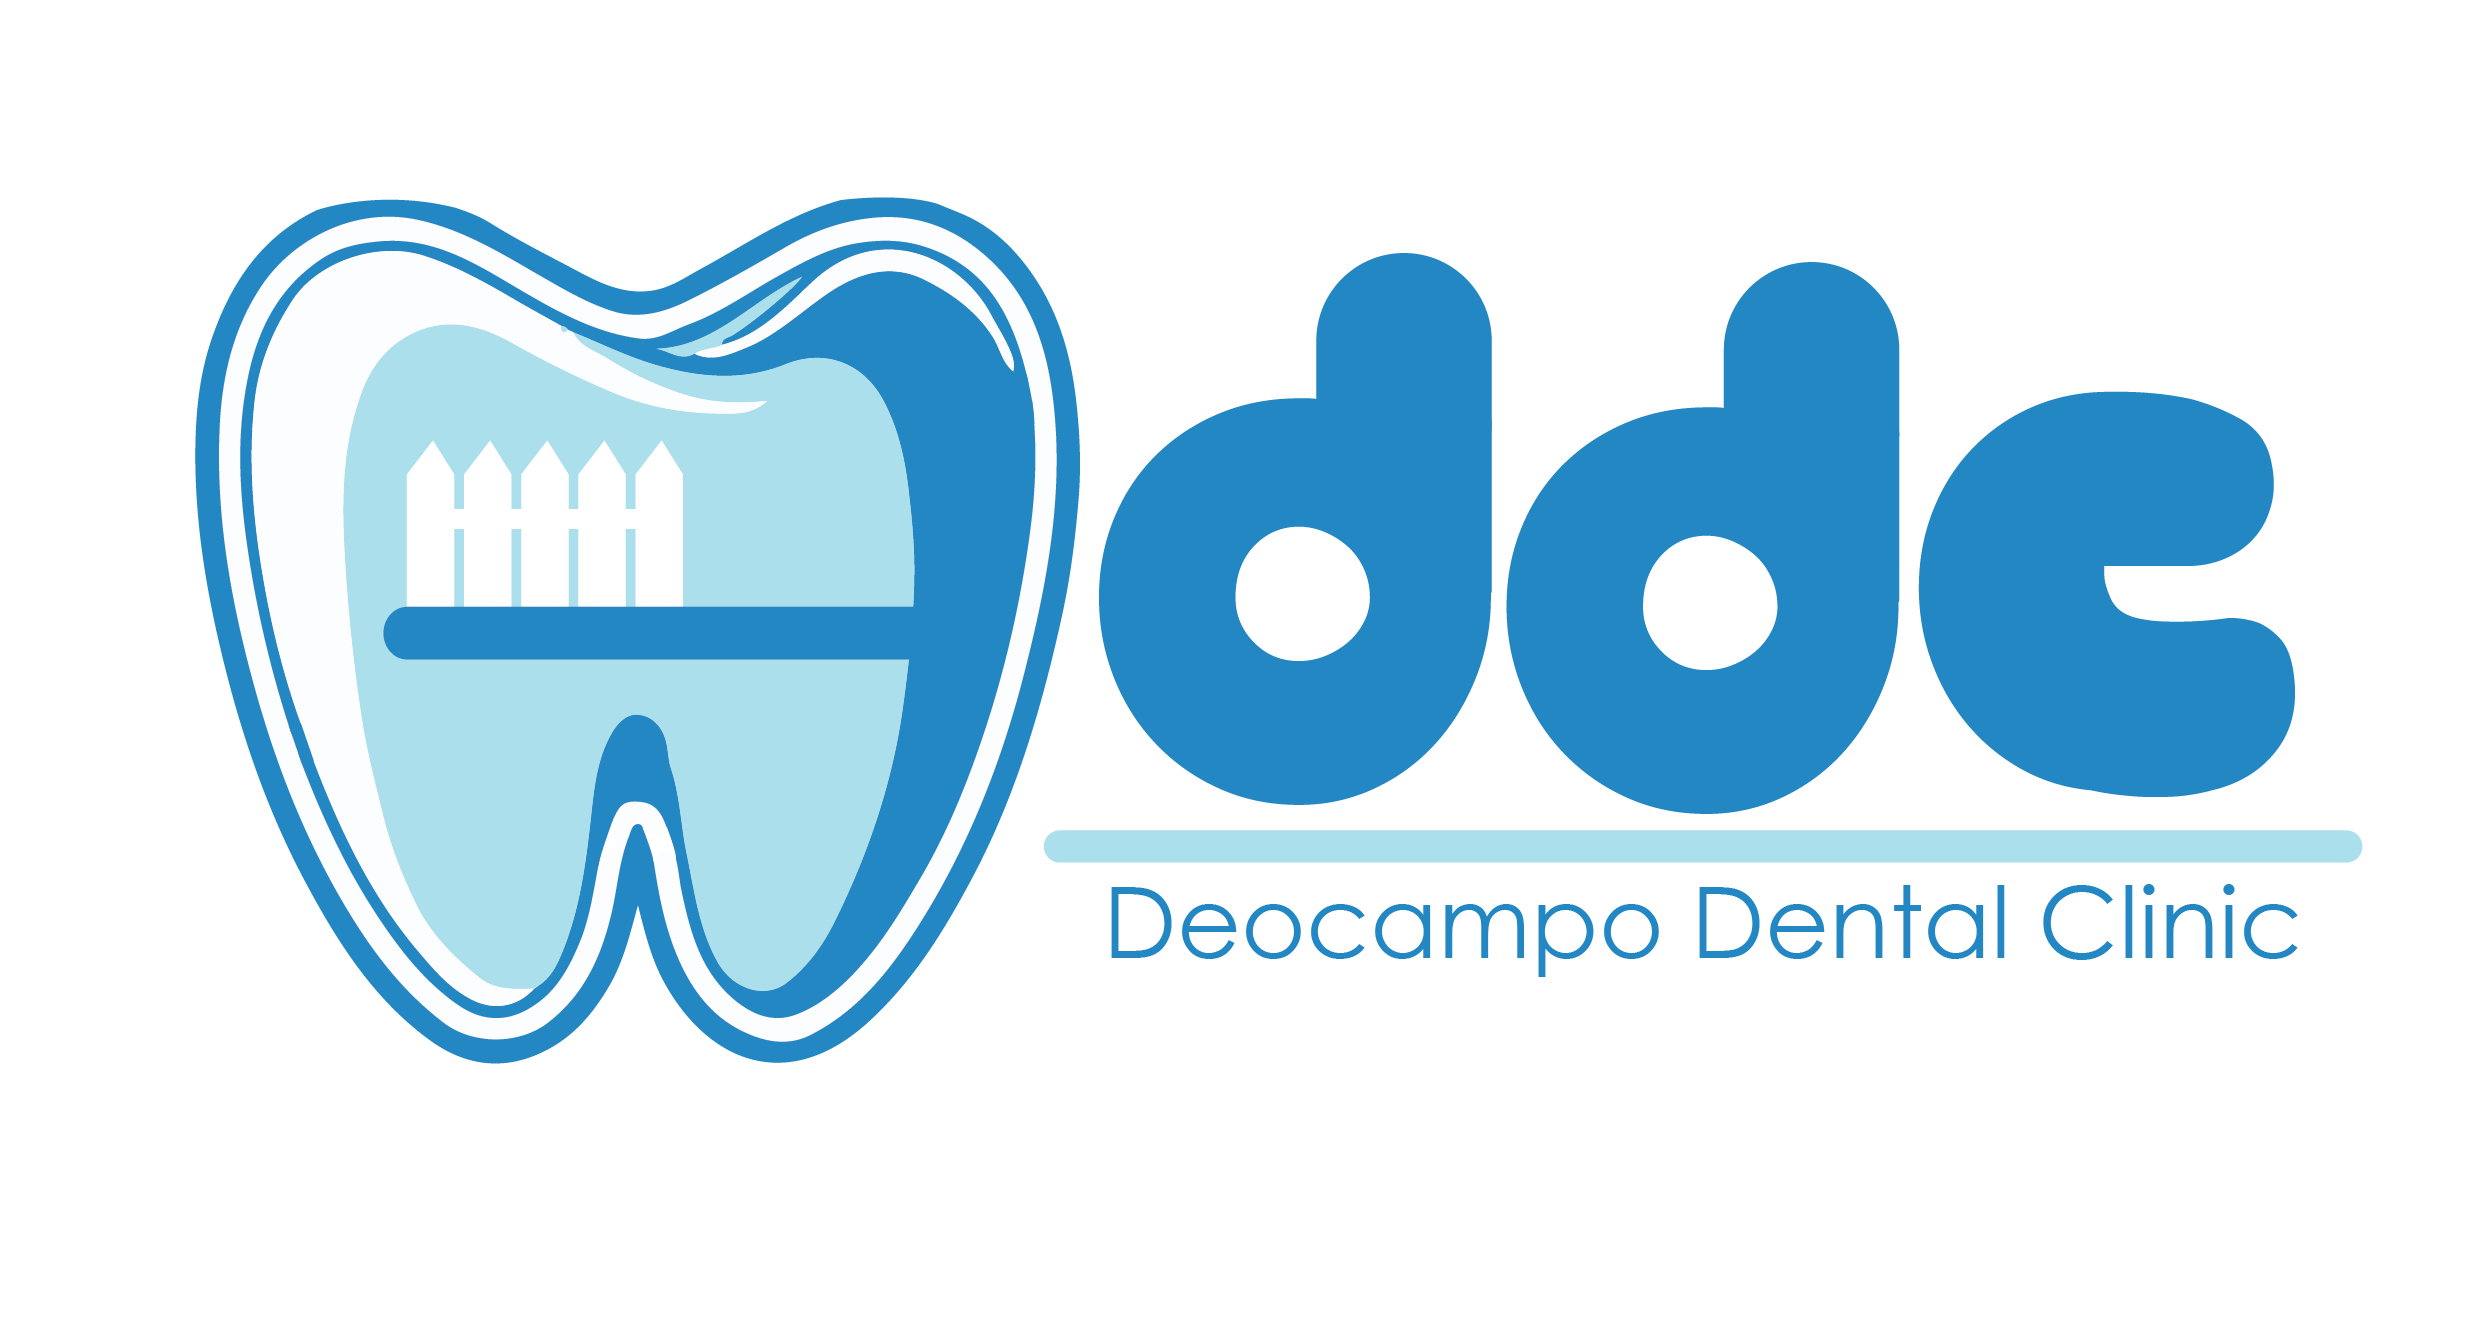 DeoCampo Dental Clinic